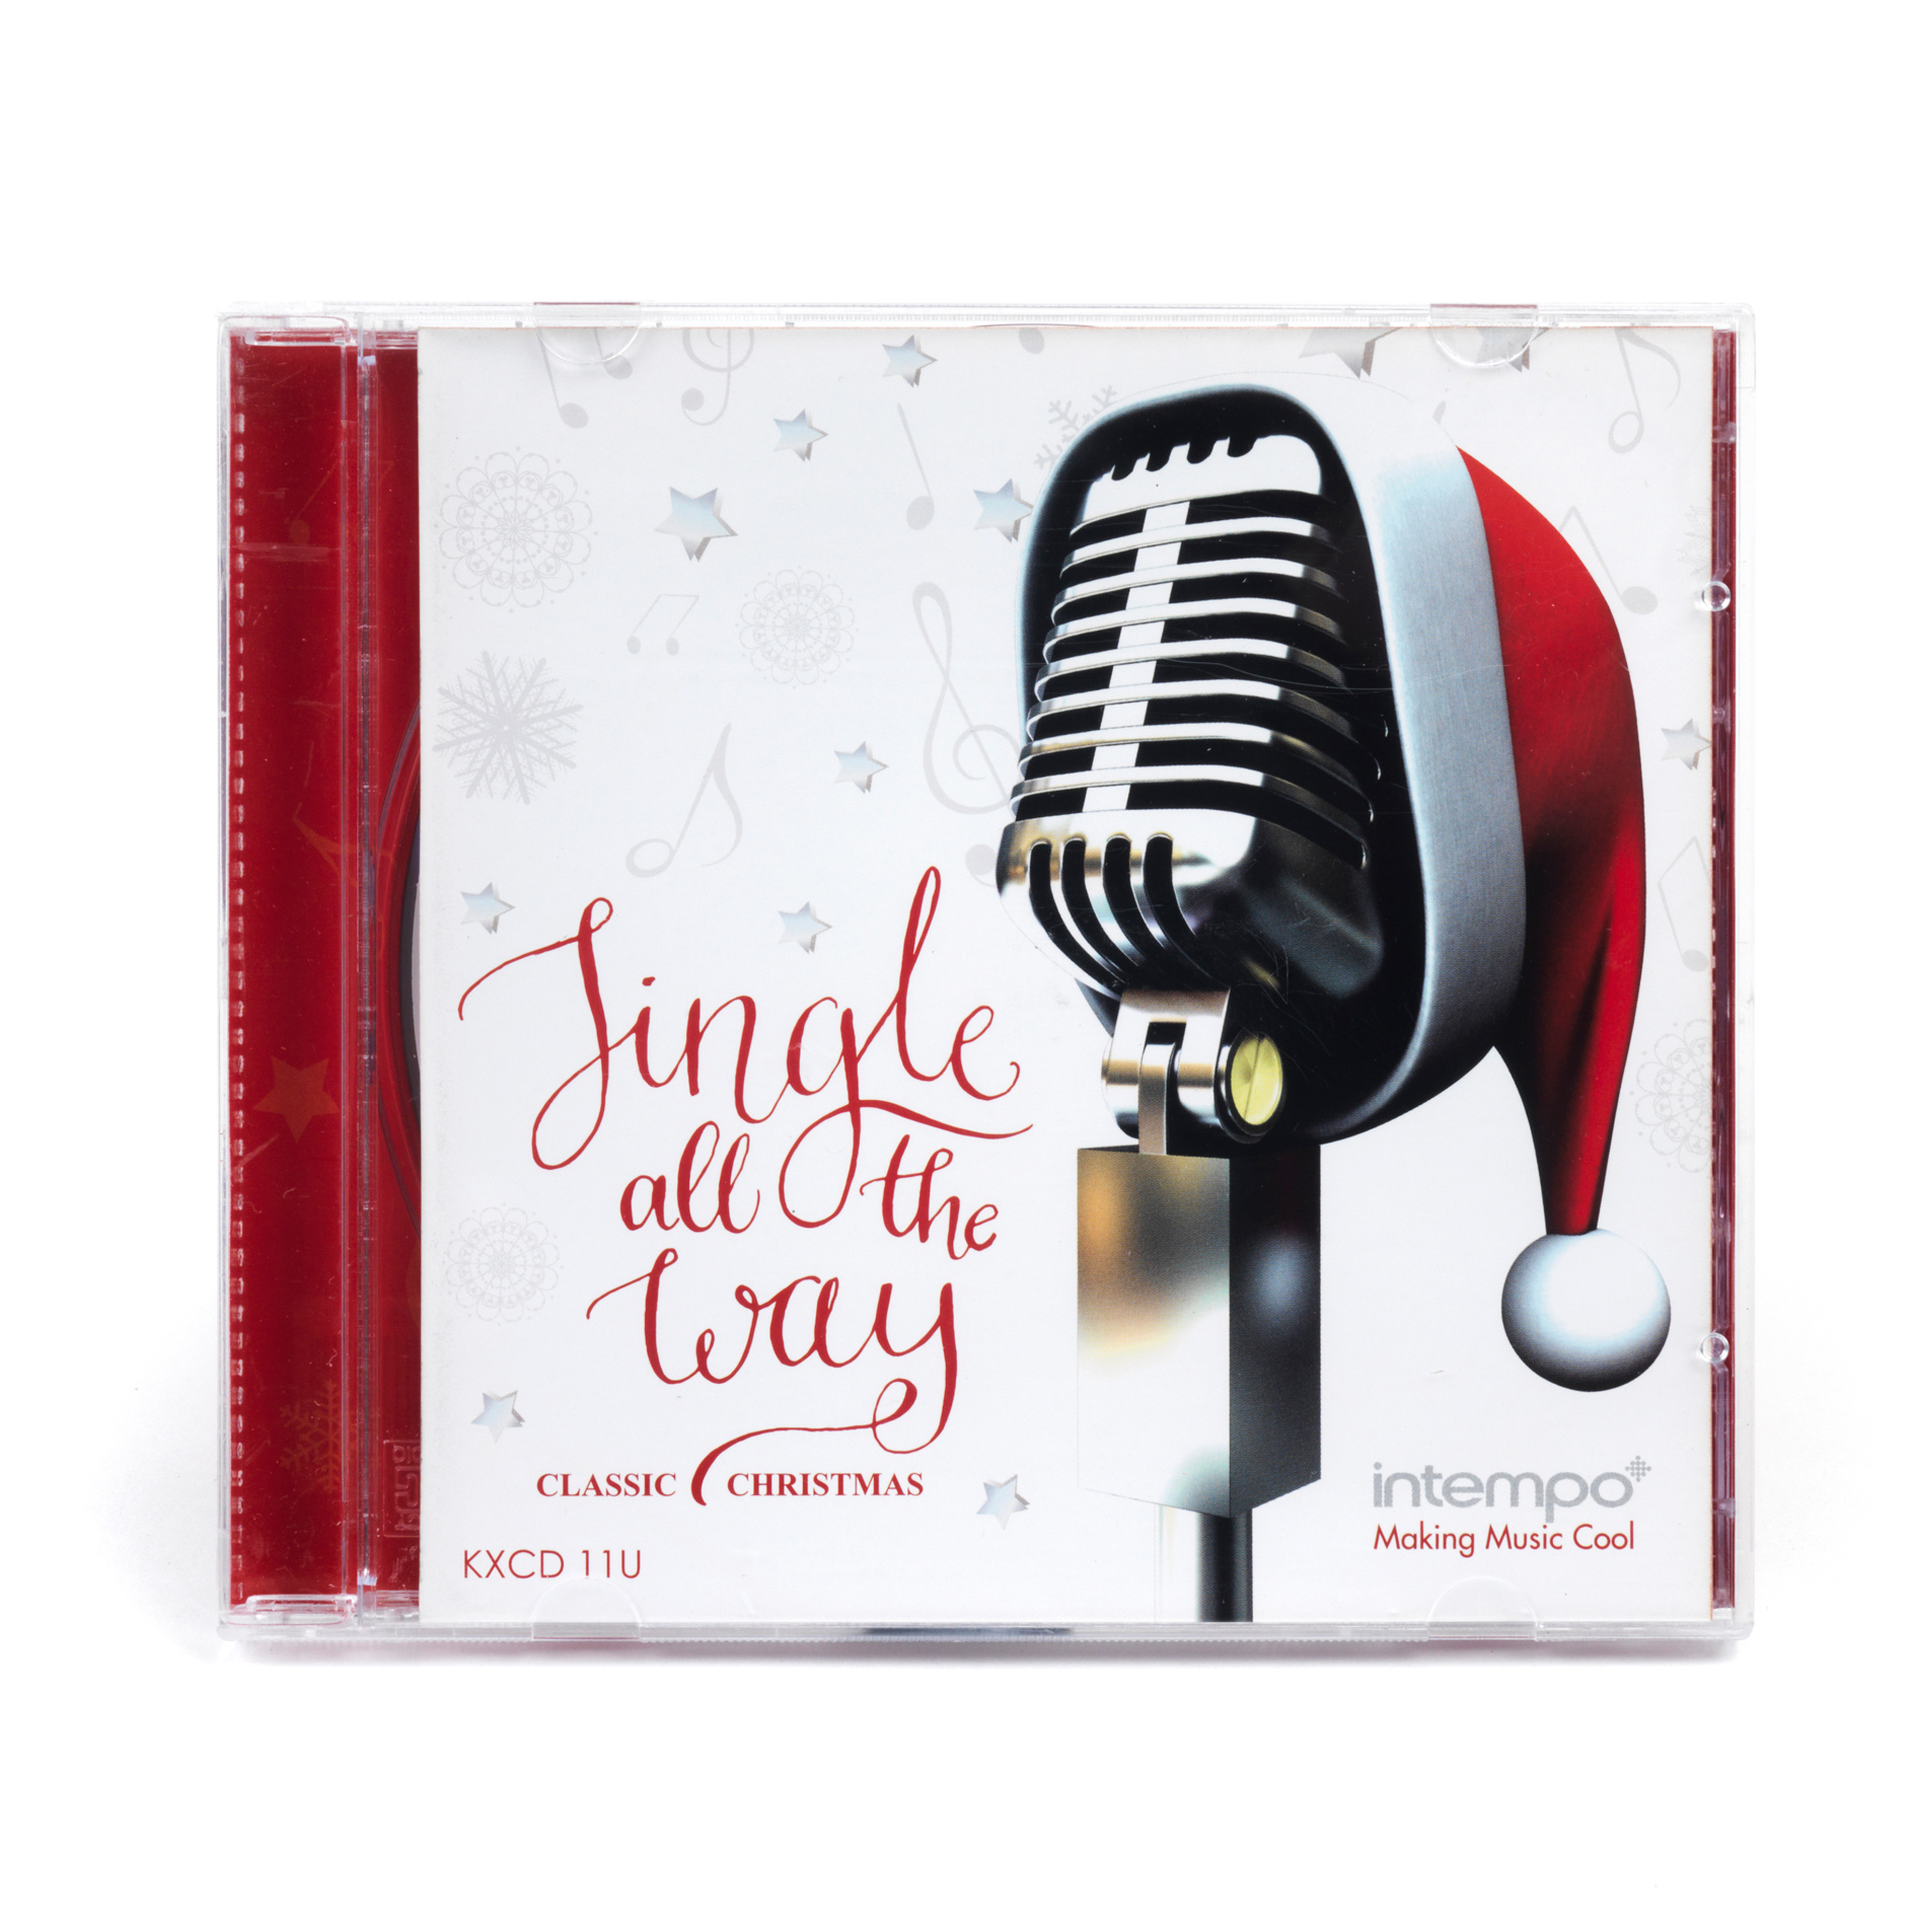 intempo ee1576 jingle all the way classic christmas songs cd - Christmas Songs Classic